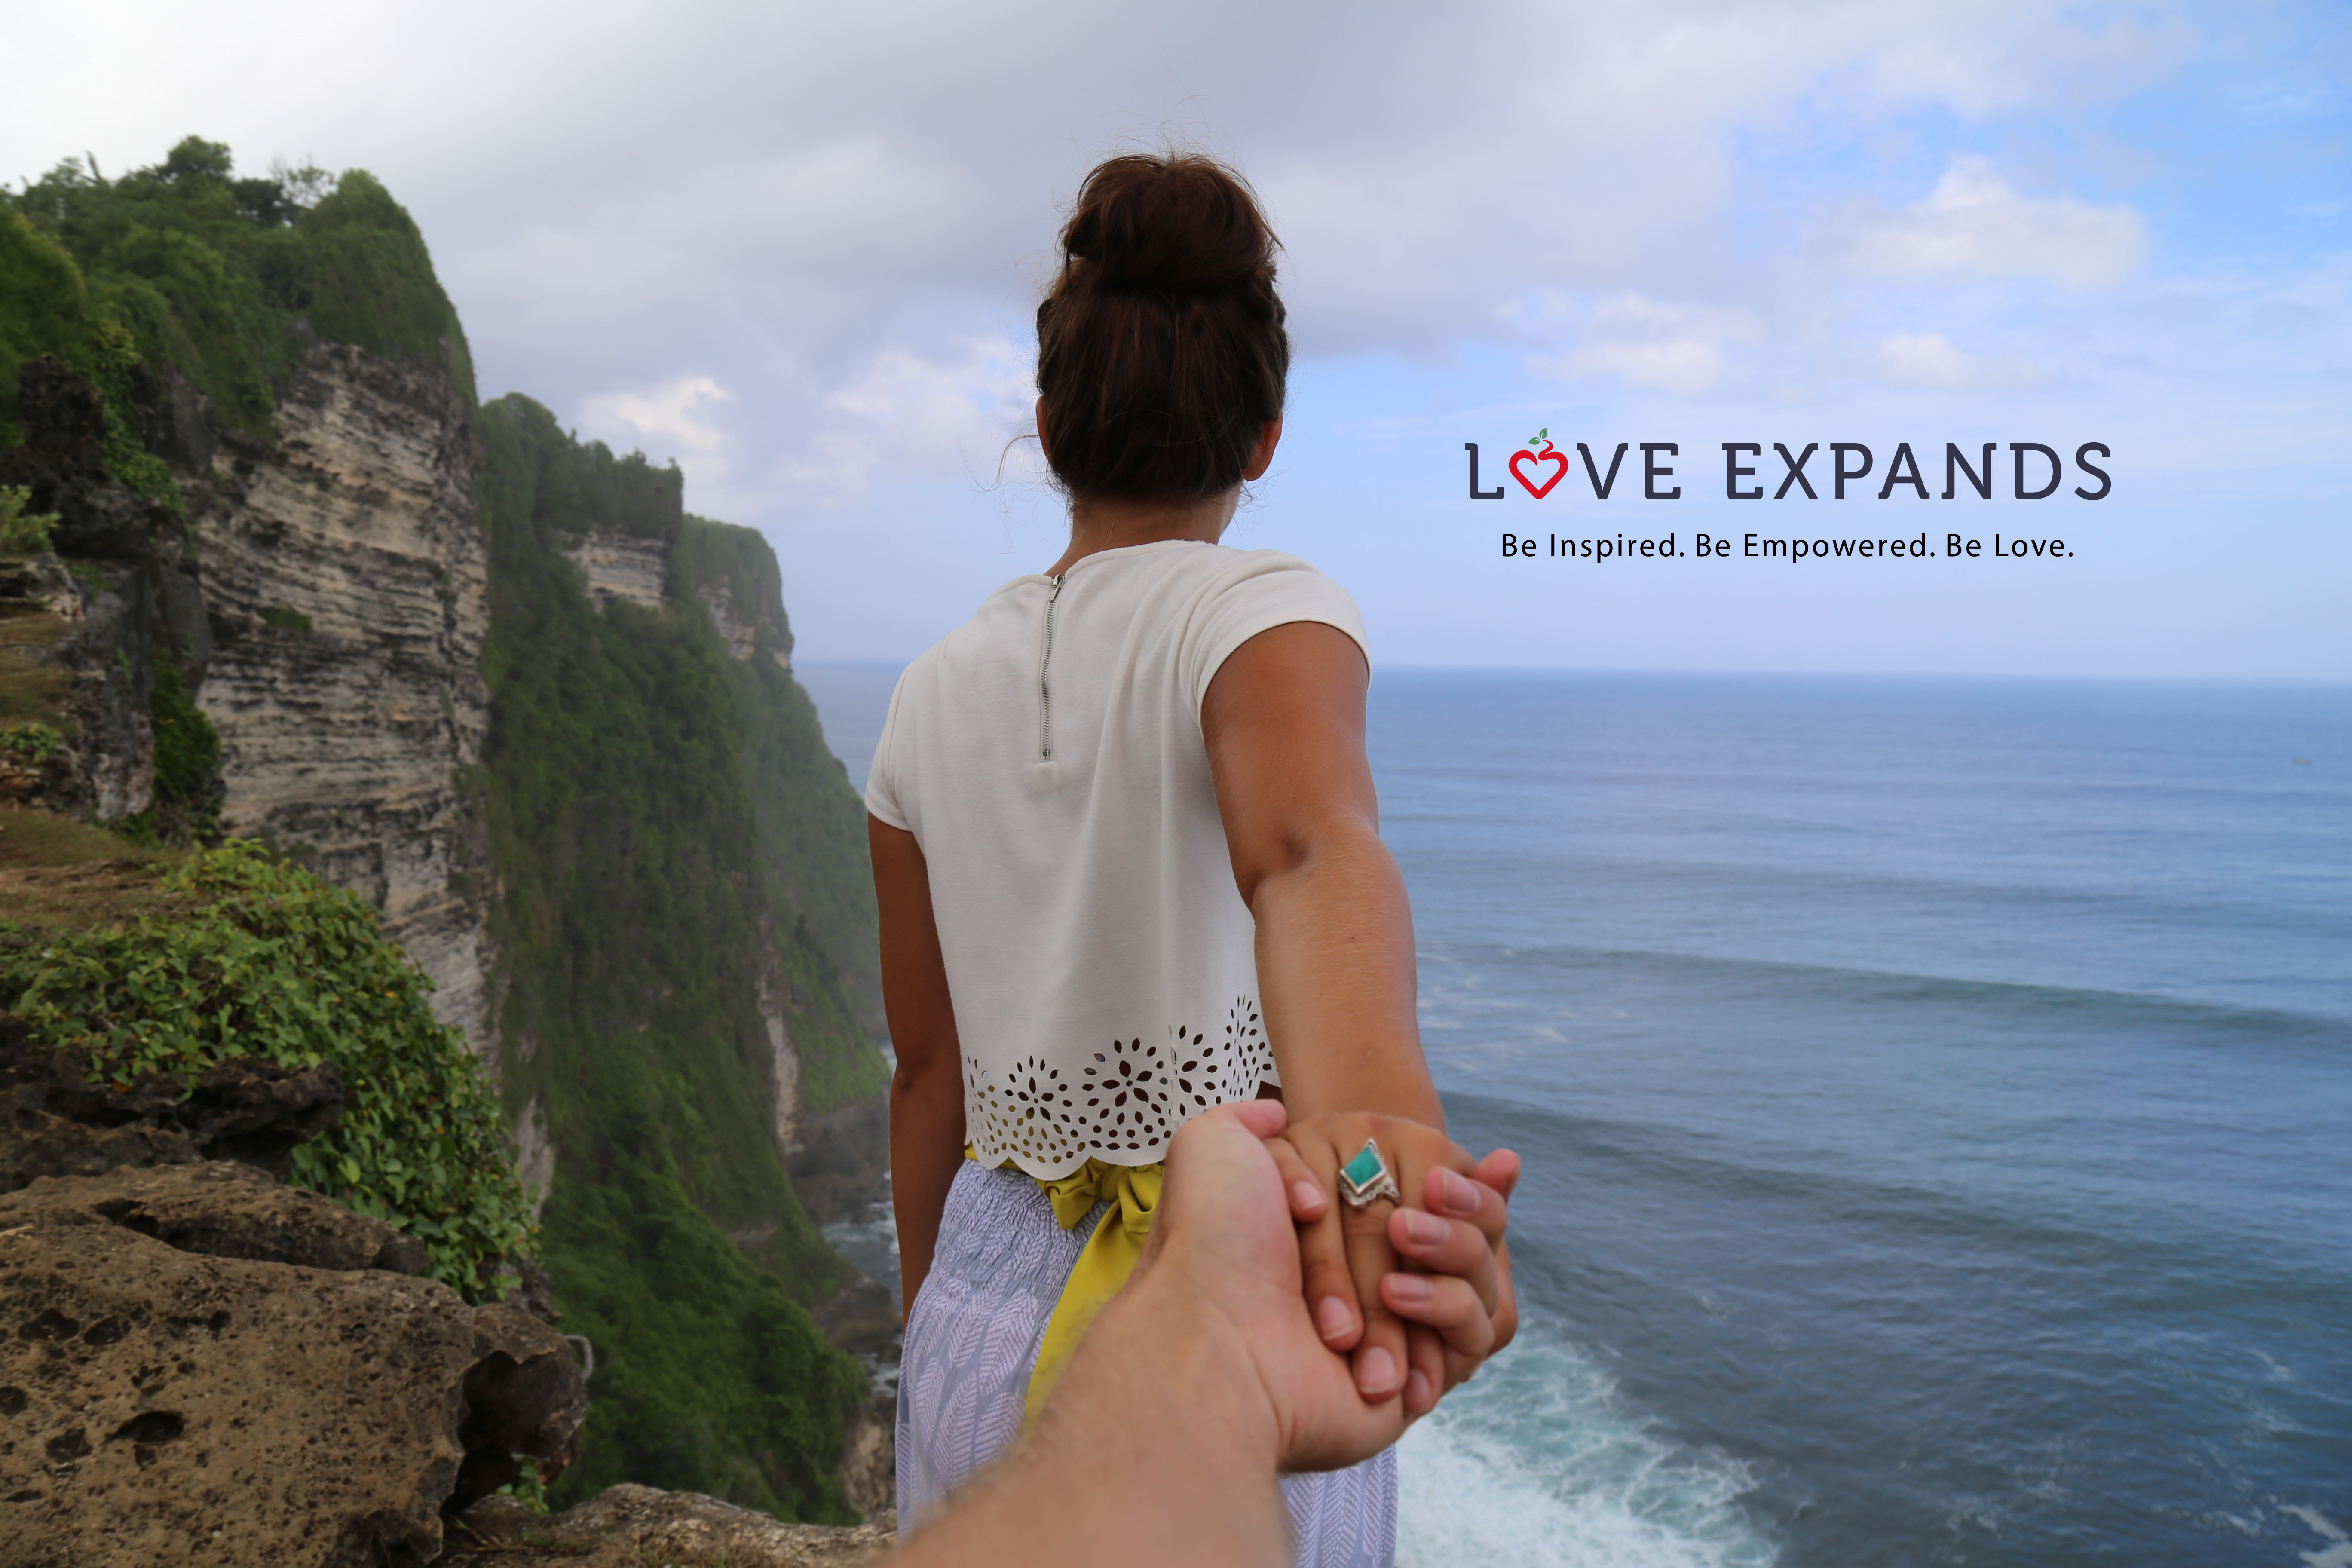 Love Expands Dating tops our list of Best Online Dating Sites